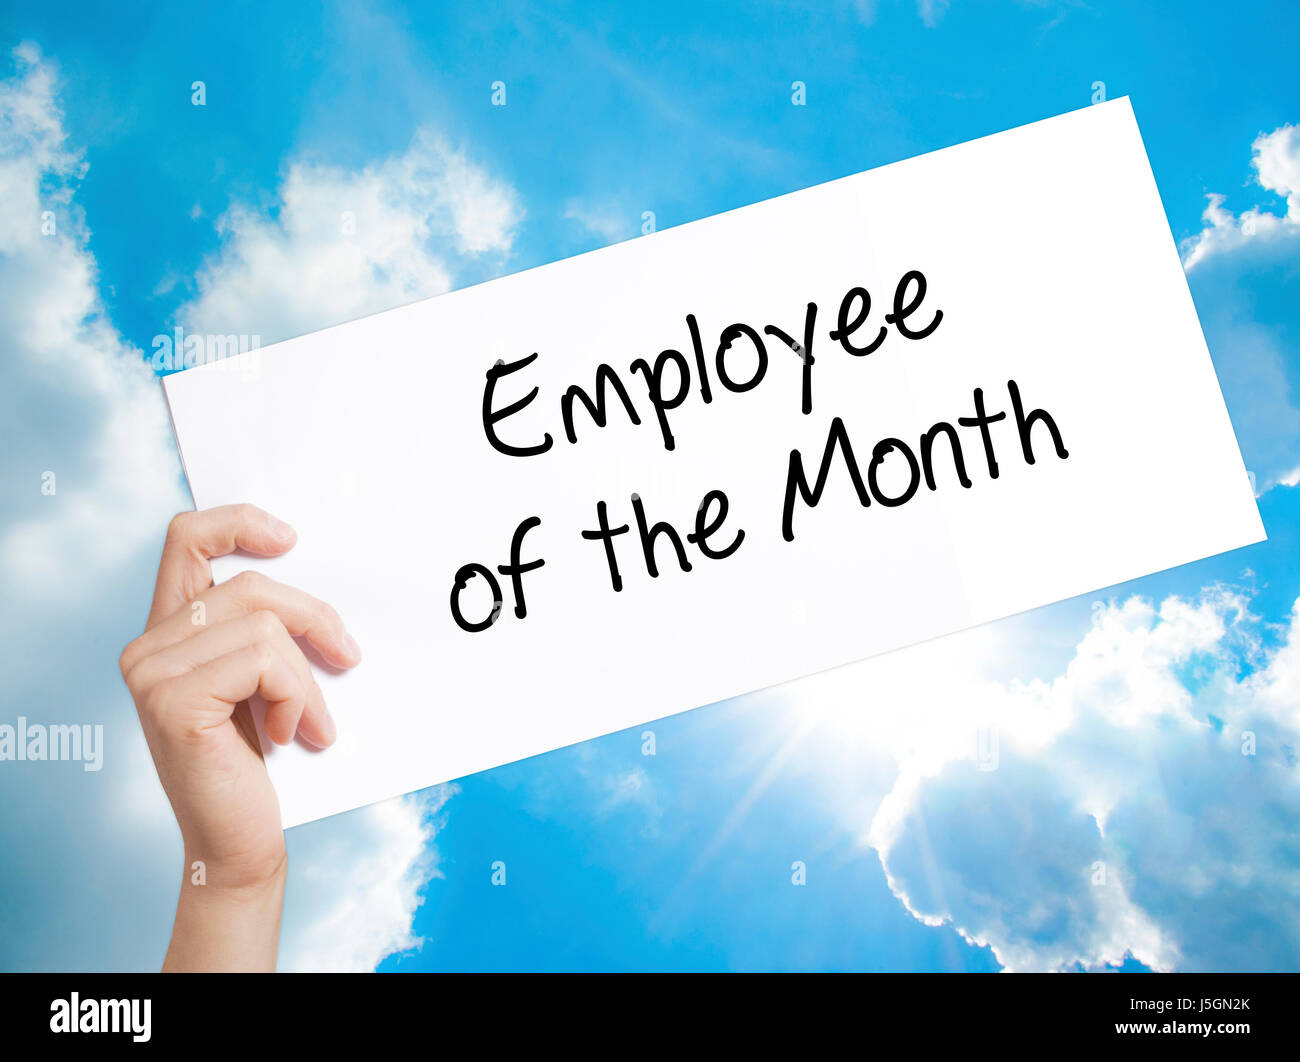 reaction paper employee of the month Employee recognition jamilah frazier is nominated for employee of the month for her outstanding efforts in preparing and guiding the center through the carf survey.